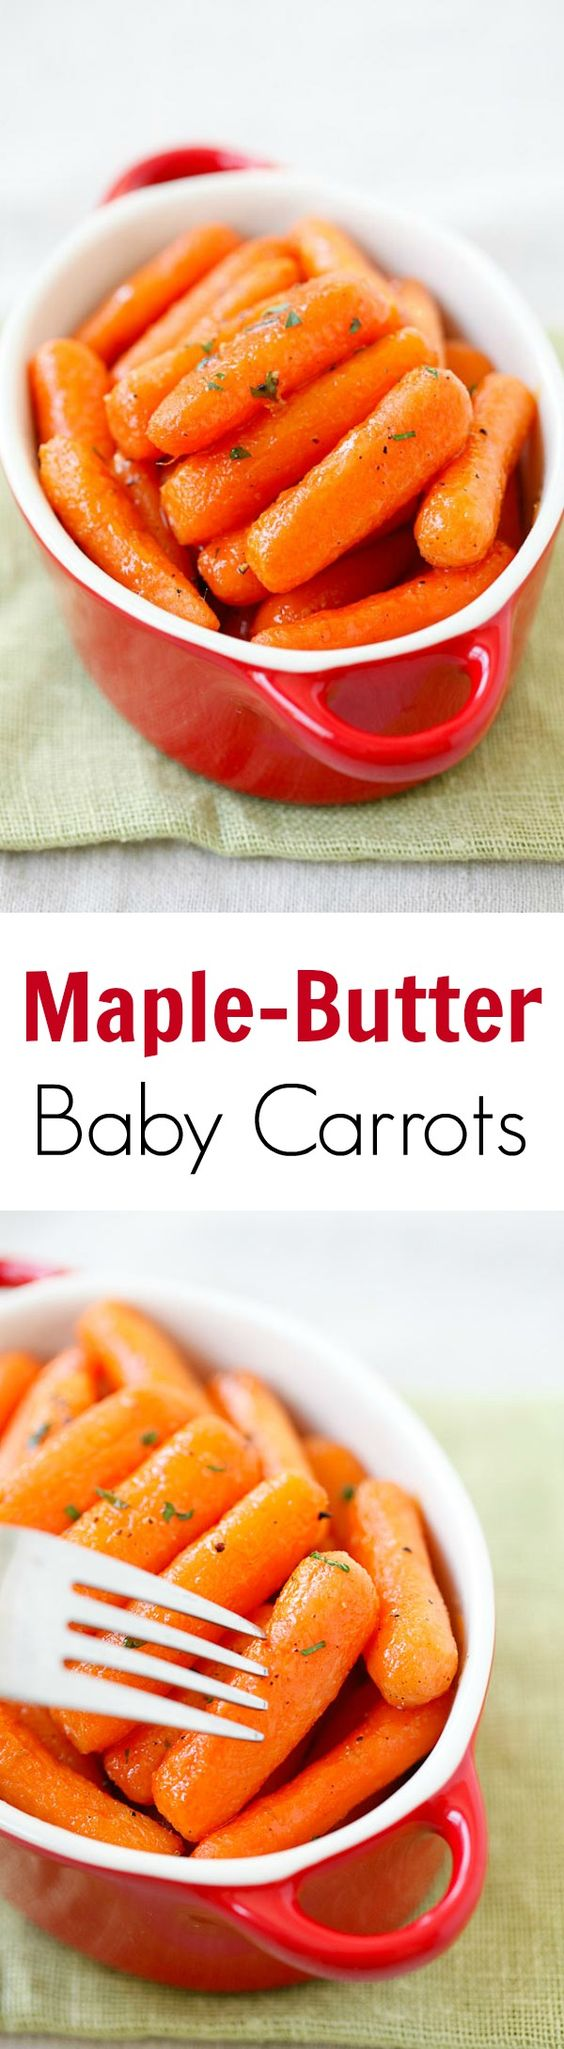 Maple-butter roasted baby carrots – tender and soft carrots roasted with sweet maple-butter. Great and healthy side dish for the entire family!! | rasamalaysia.com